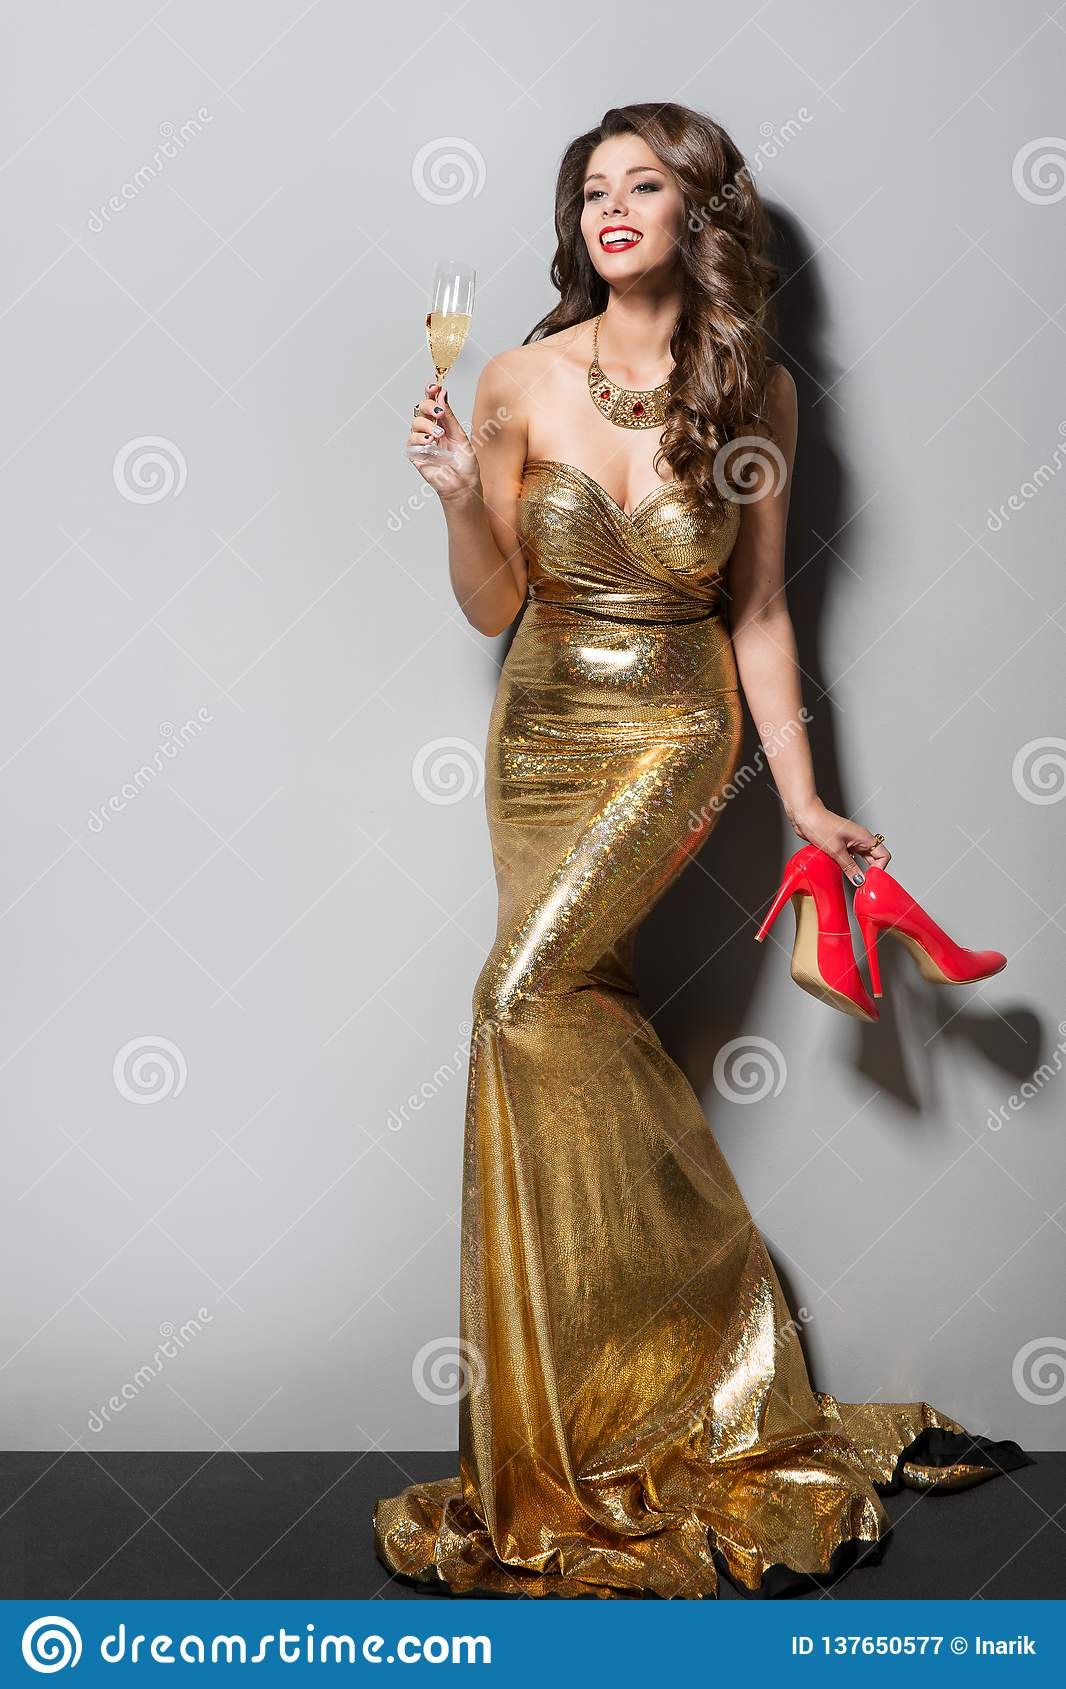 Fashion Model in Long Gold Dress Dancing and Drinking, Happy Elegant Woman, High Heel Shoes